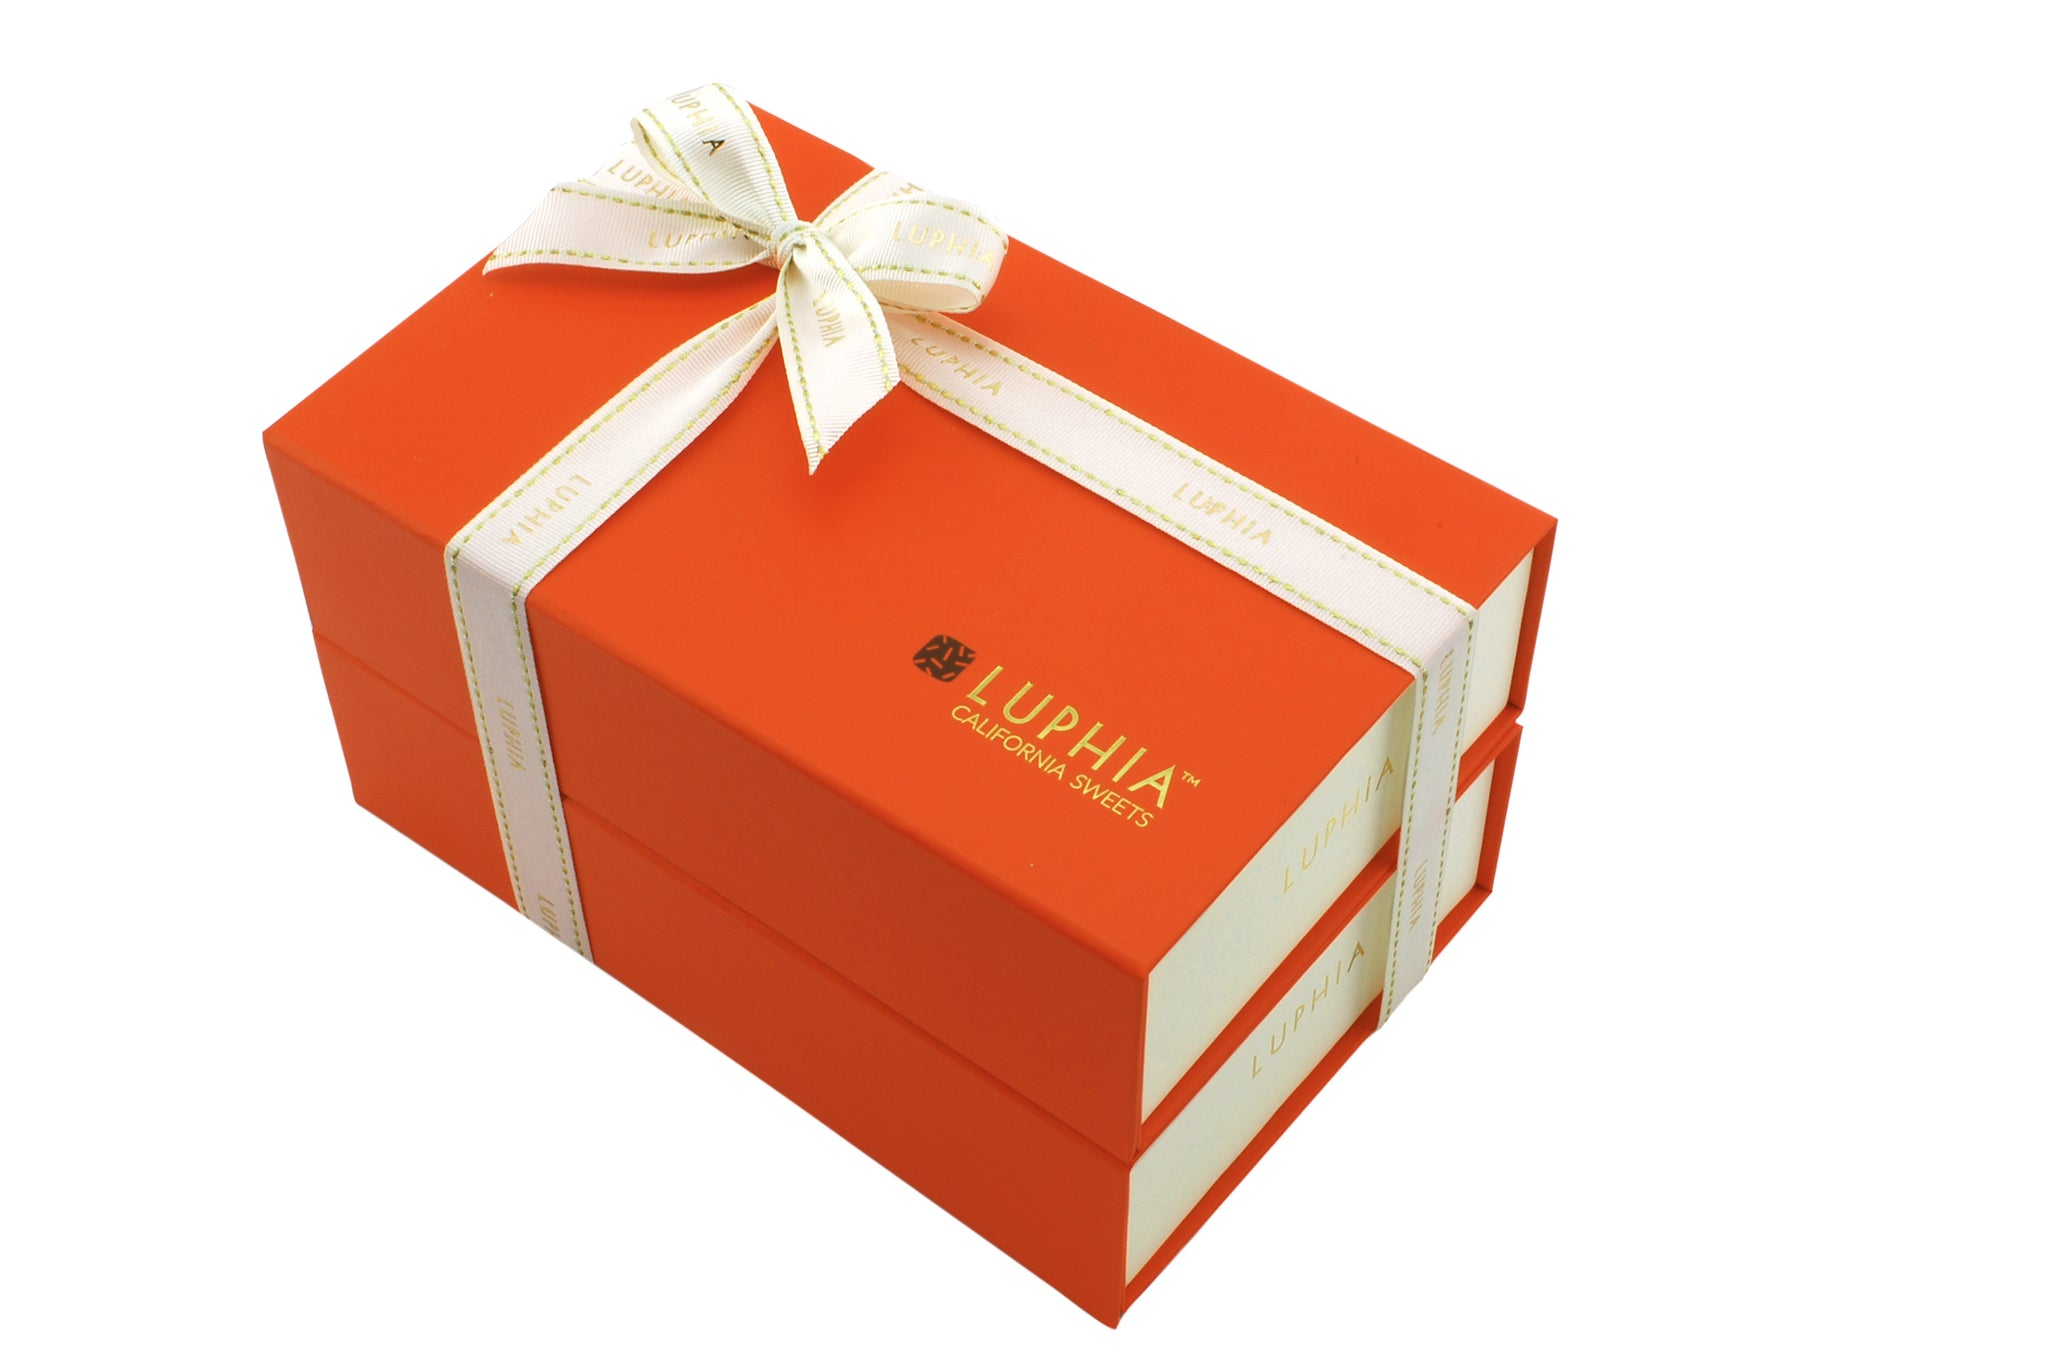 LUPHIA Sextet Gift Set with White Ribbon